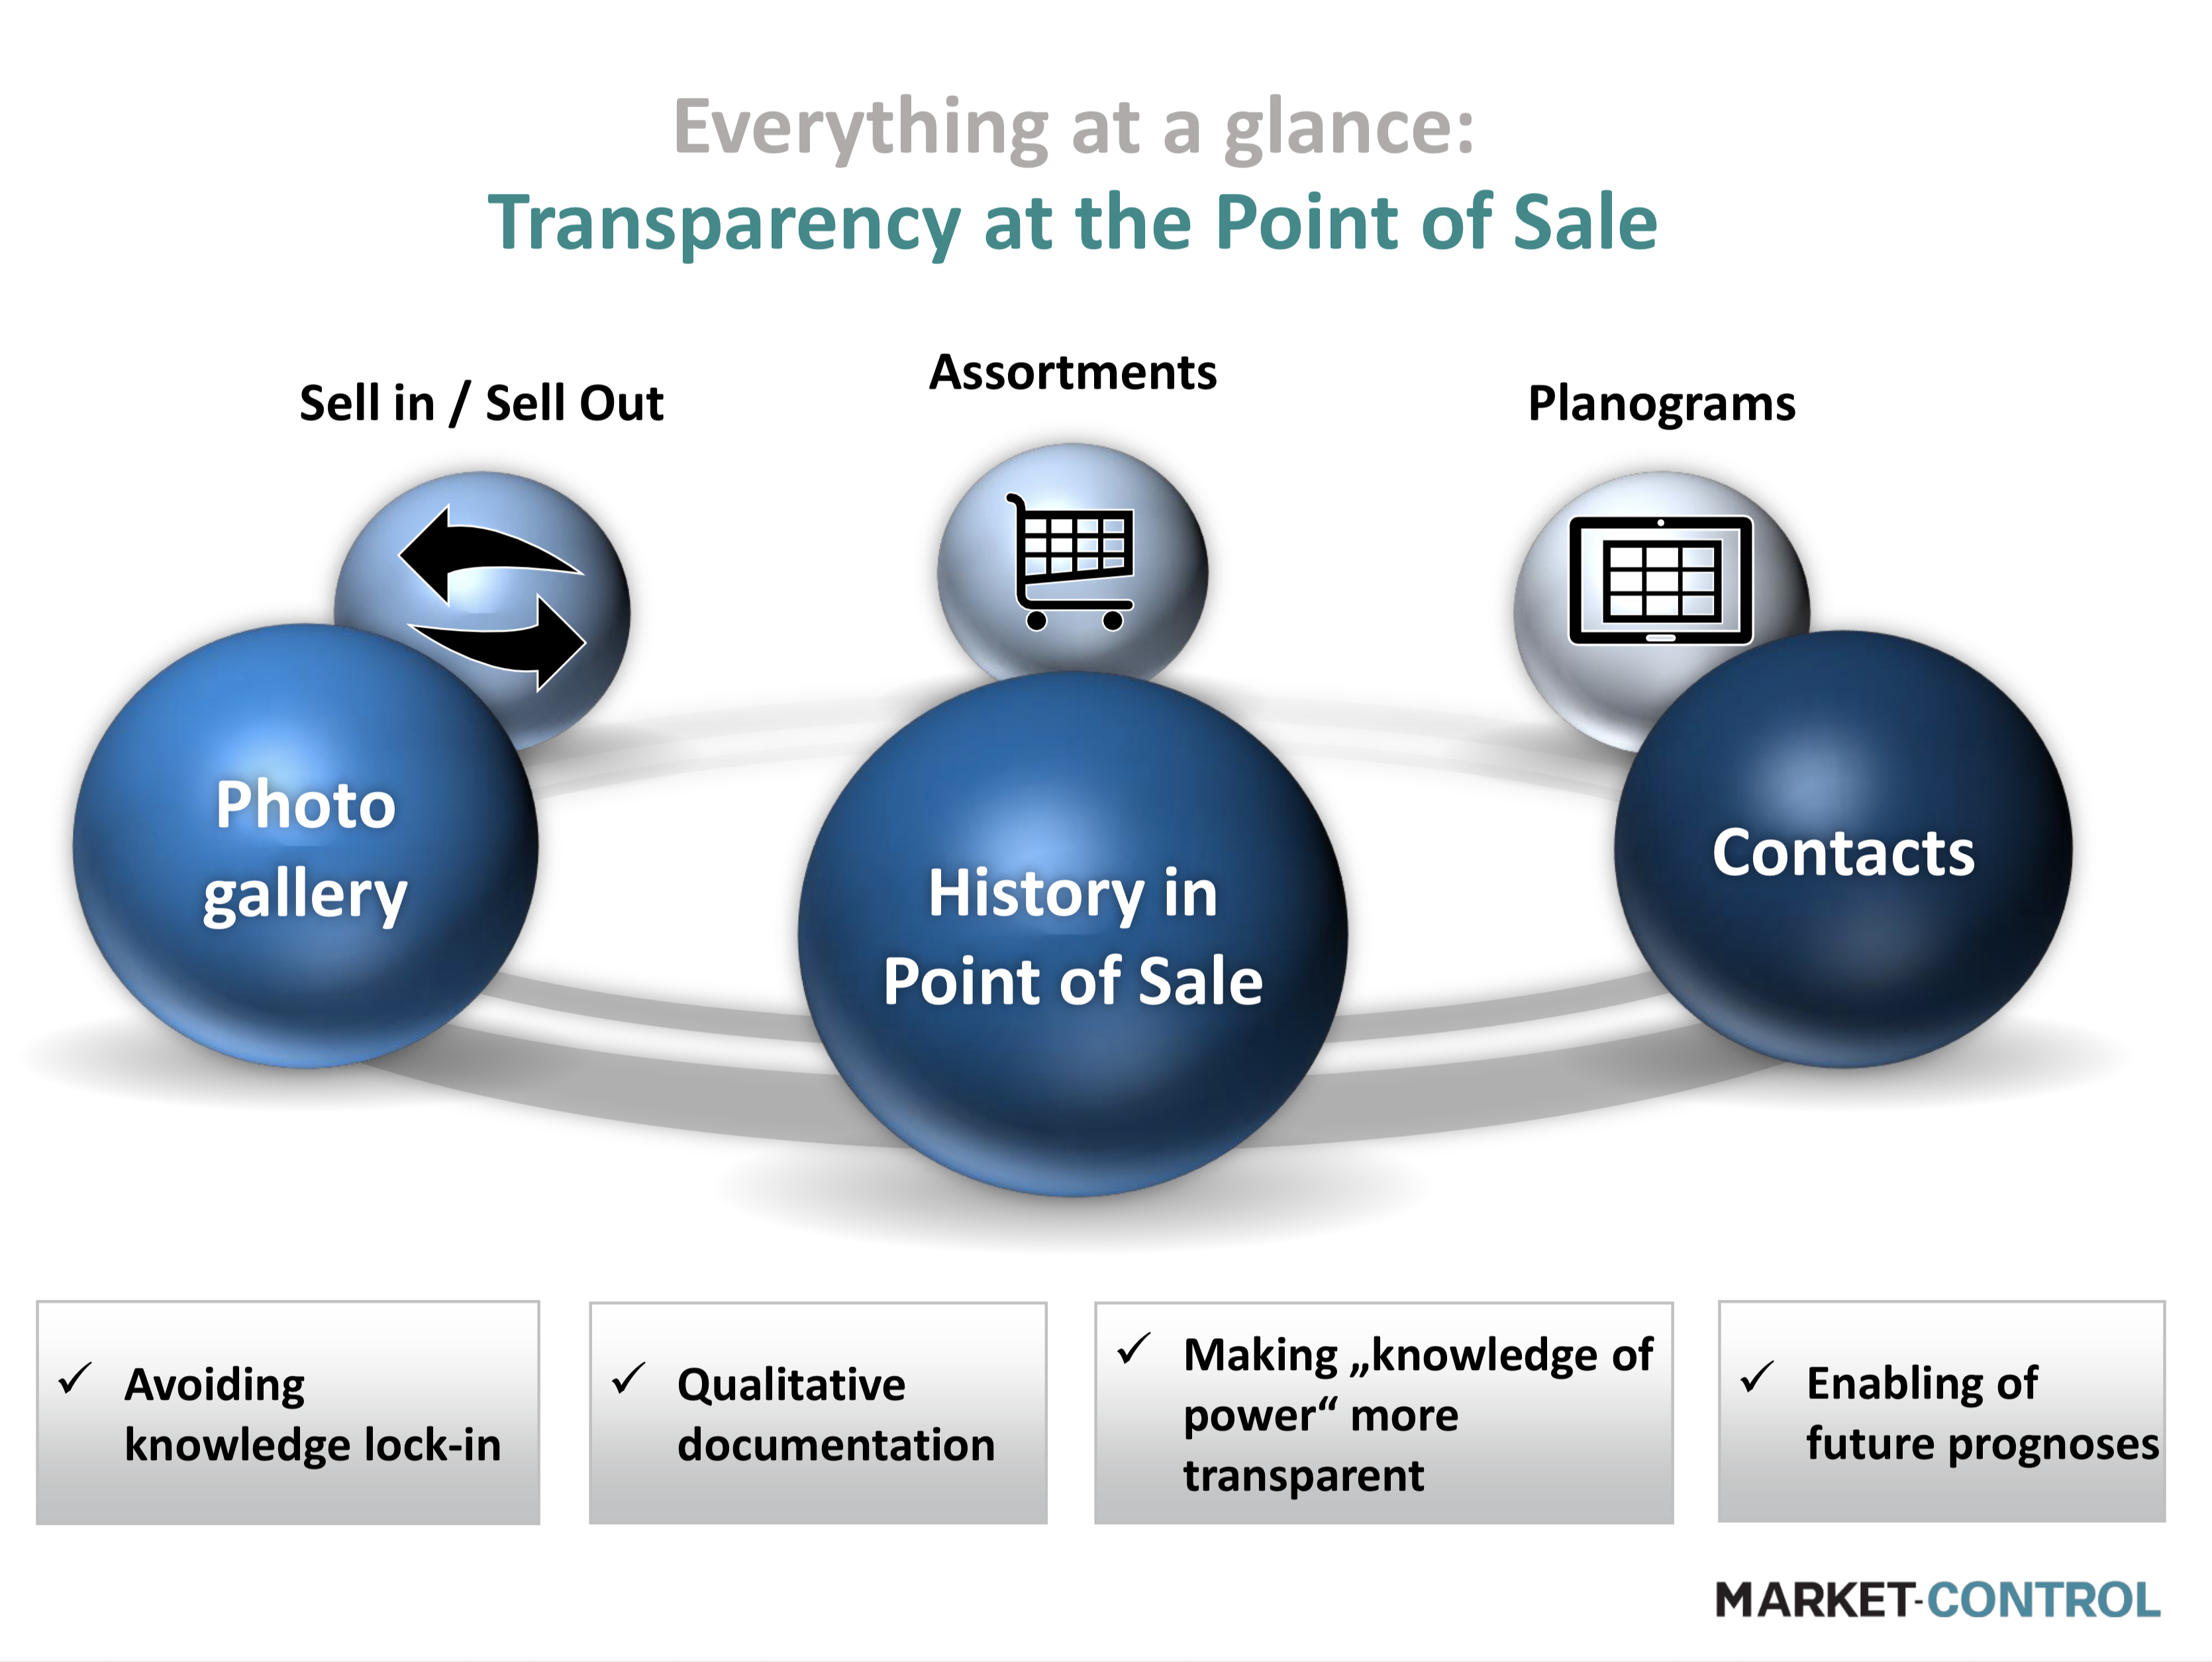 Everything at a glance: Transparency at the point of sale